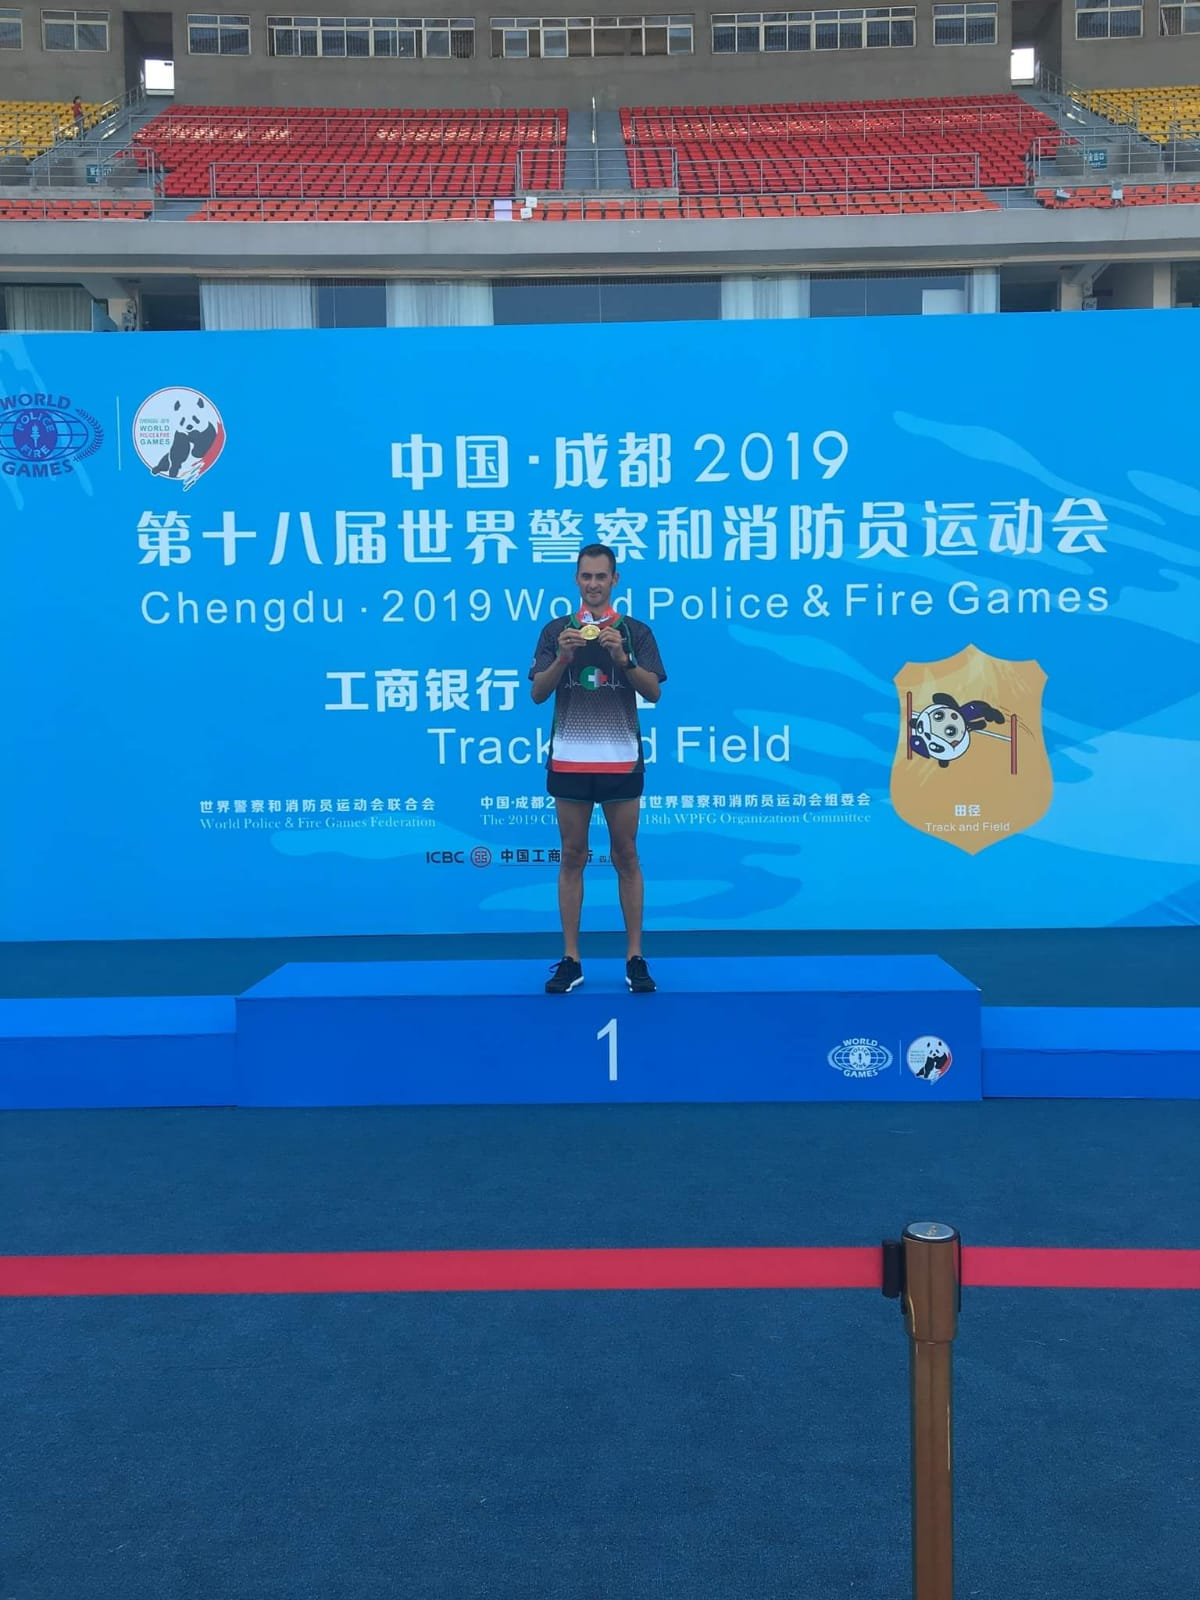 WhatsApp Image 2019 08 16 at 07.42.21 - Chengdu 2019 World Police & Fire Games